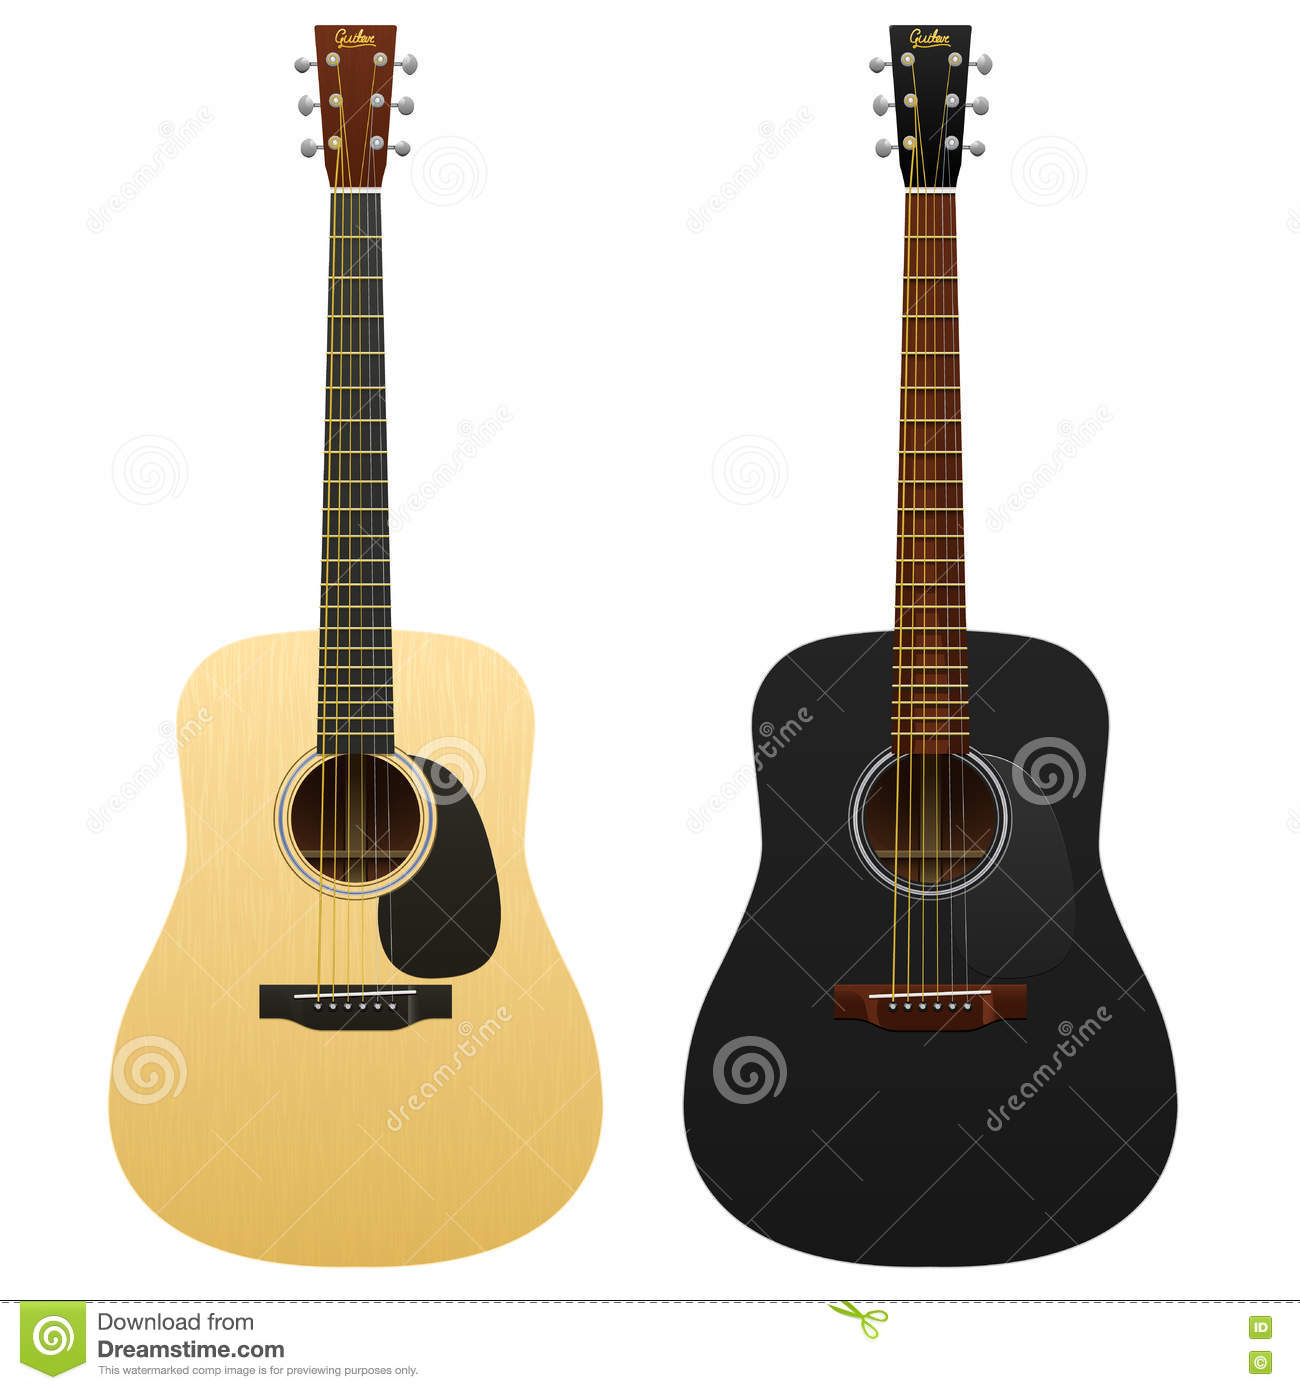 Realistic acoustic guitars isolated two western classical musical instruments guitar, classic